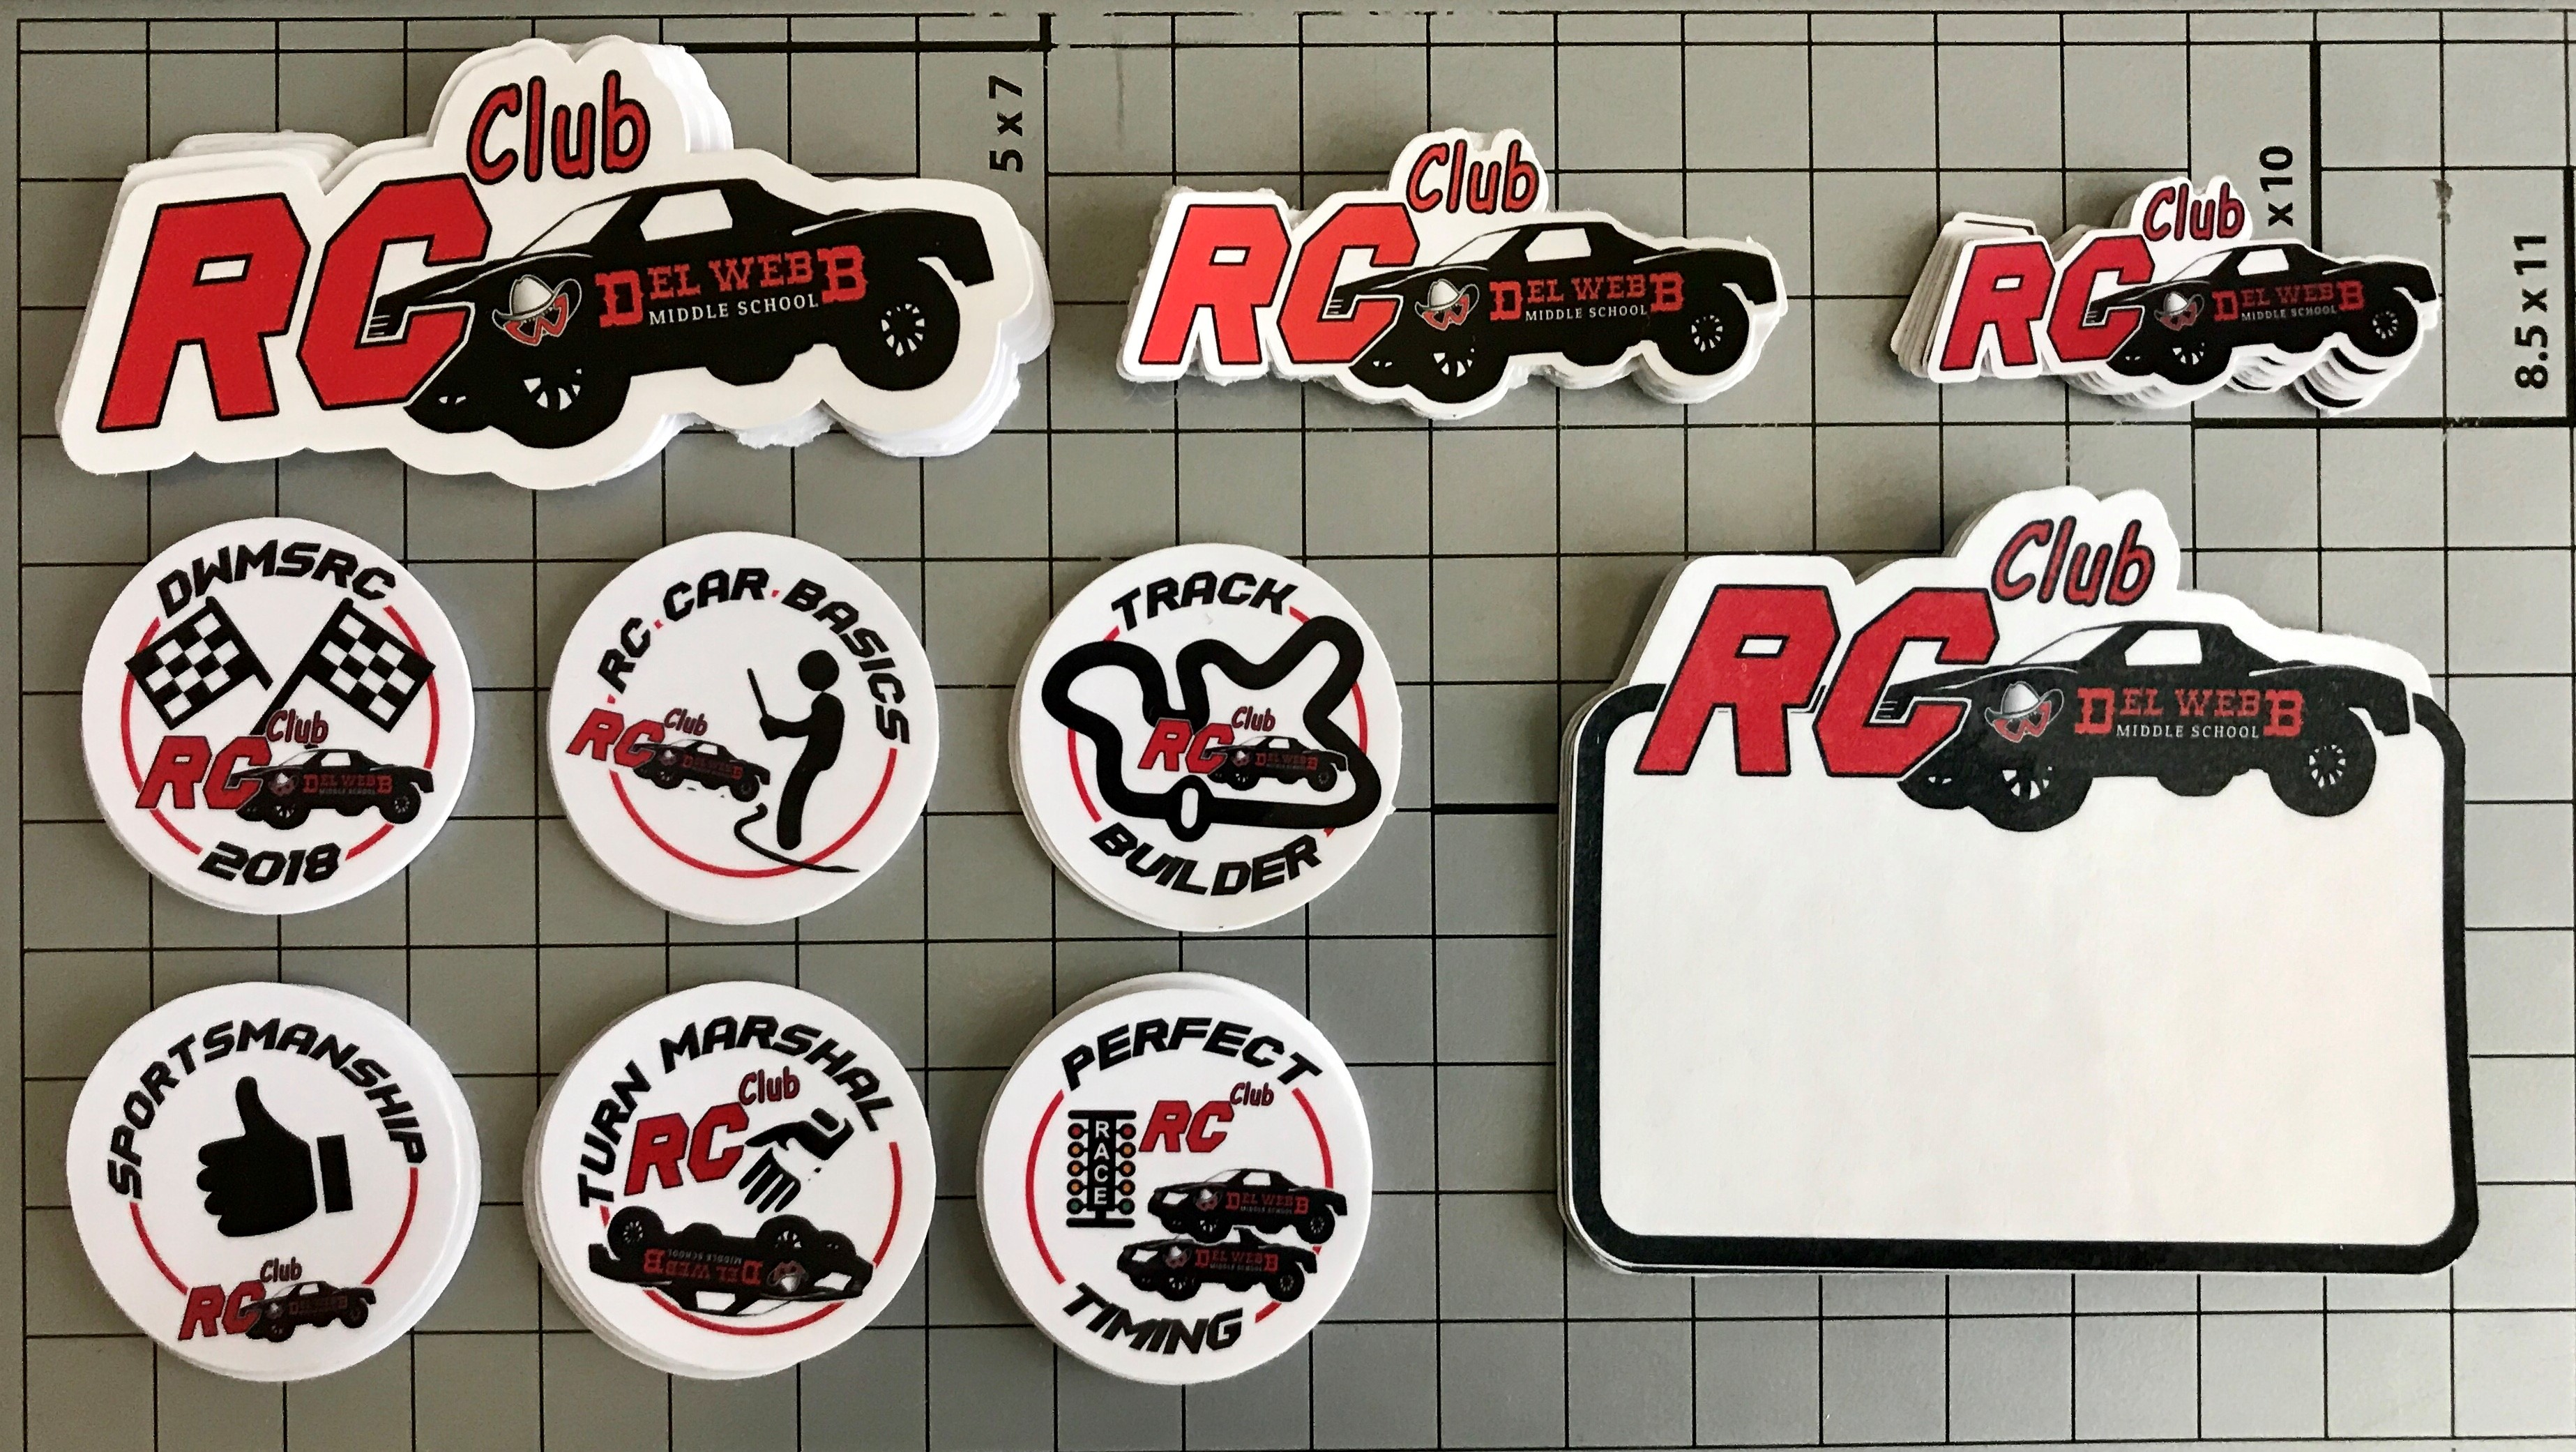 Graphic design services custom 2018 del webb middle school rc club stickers